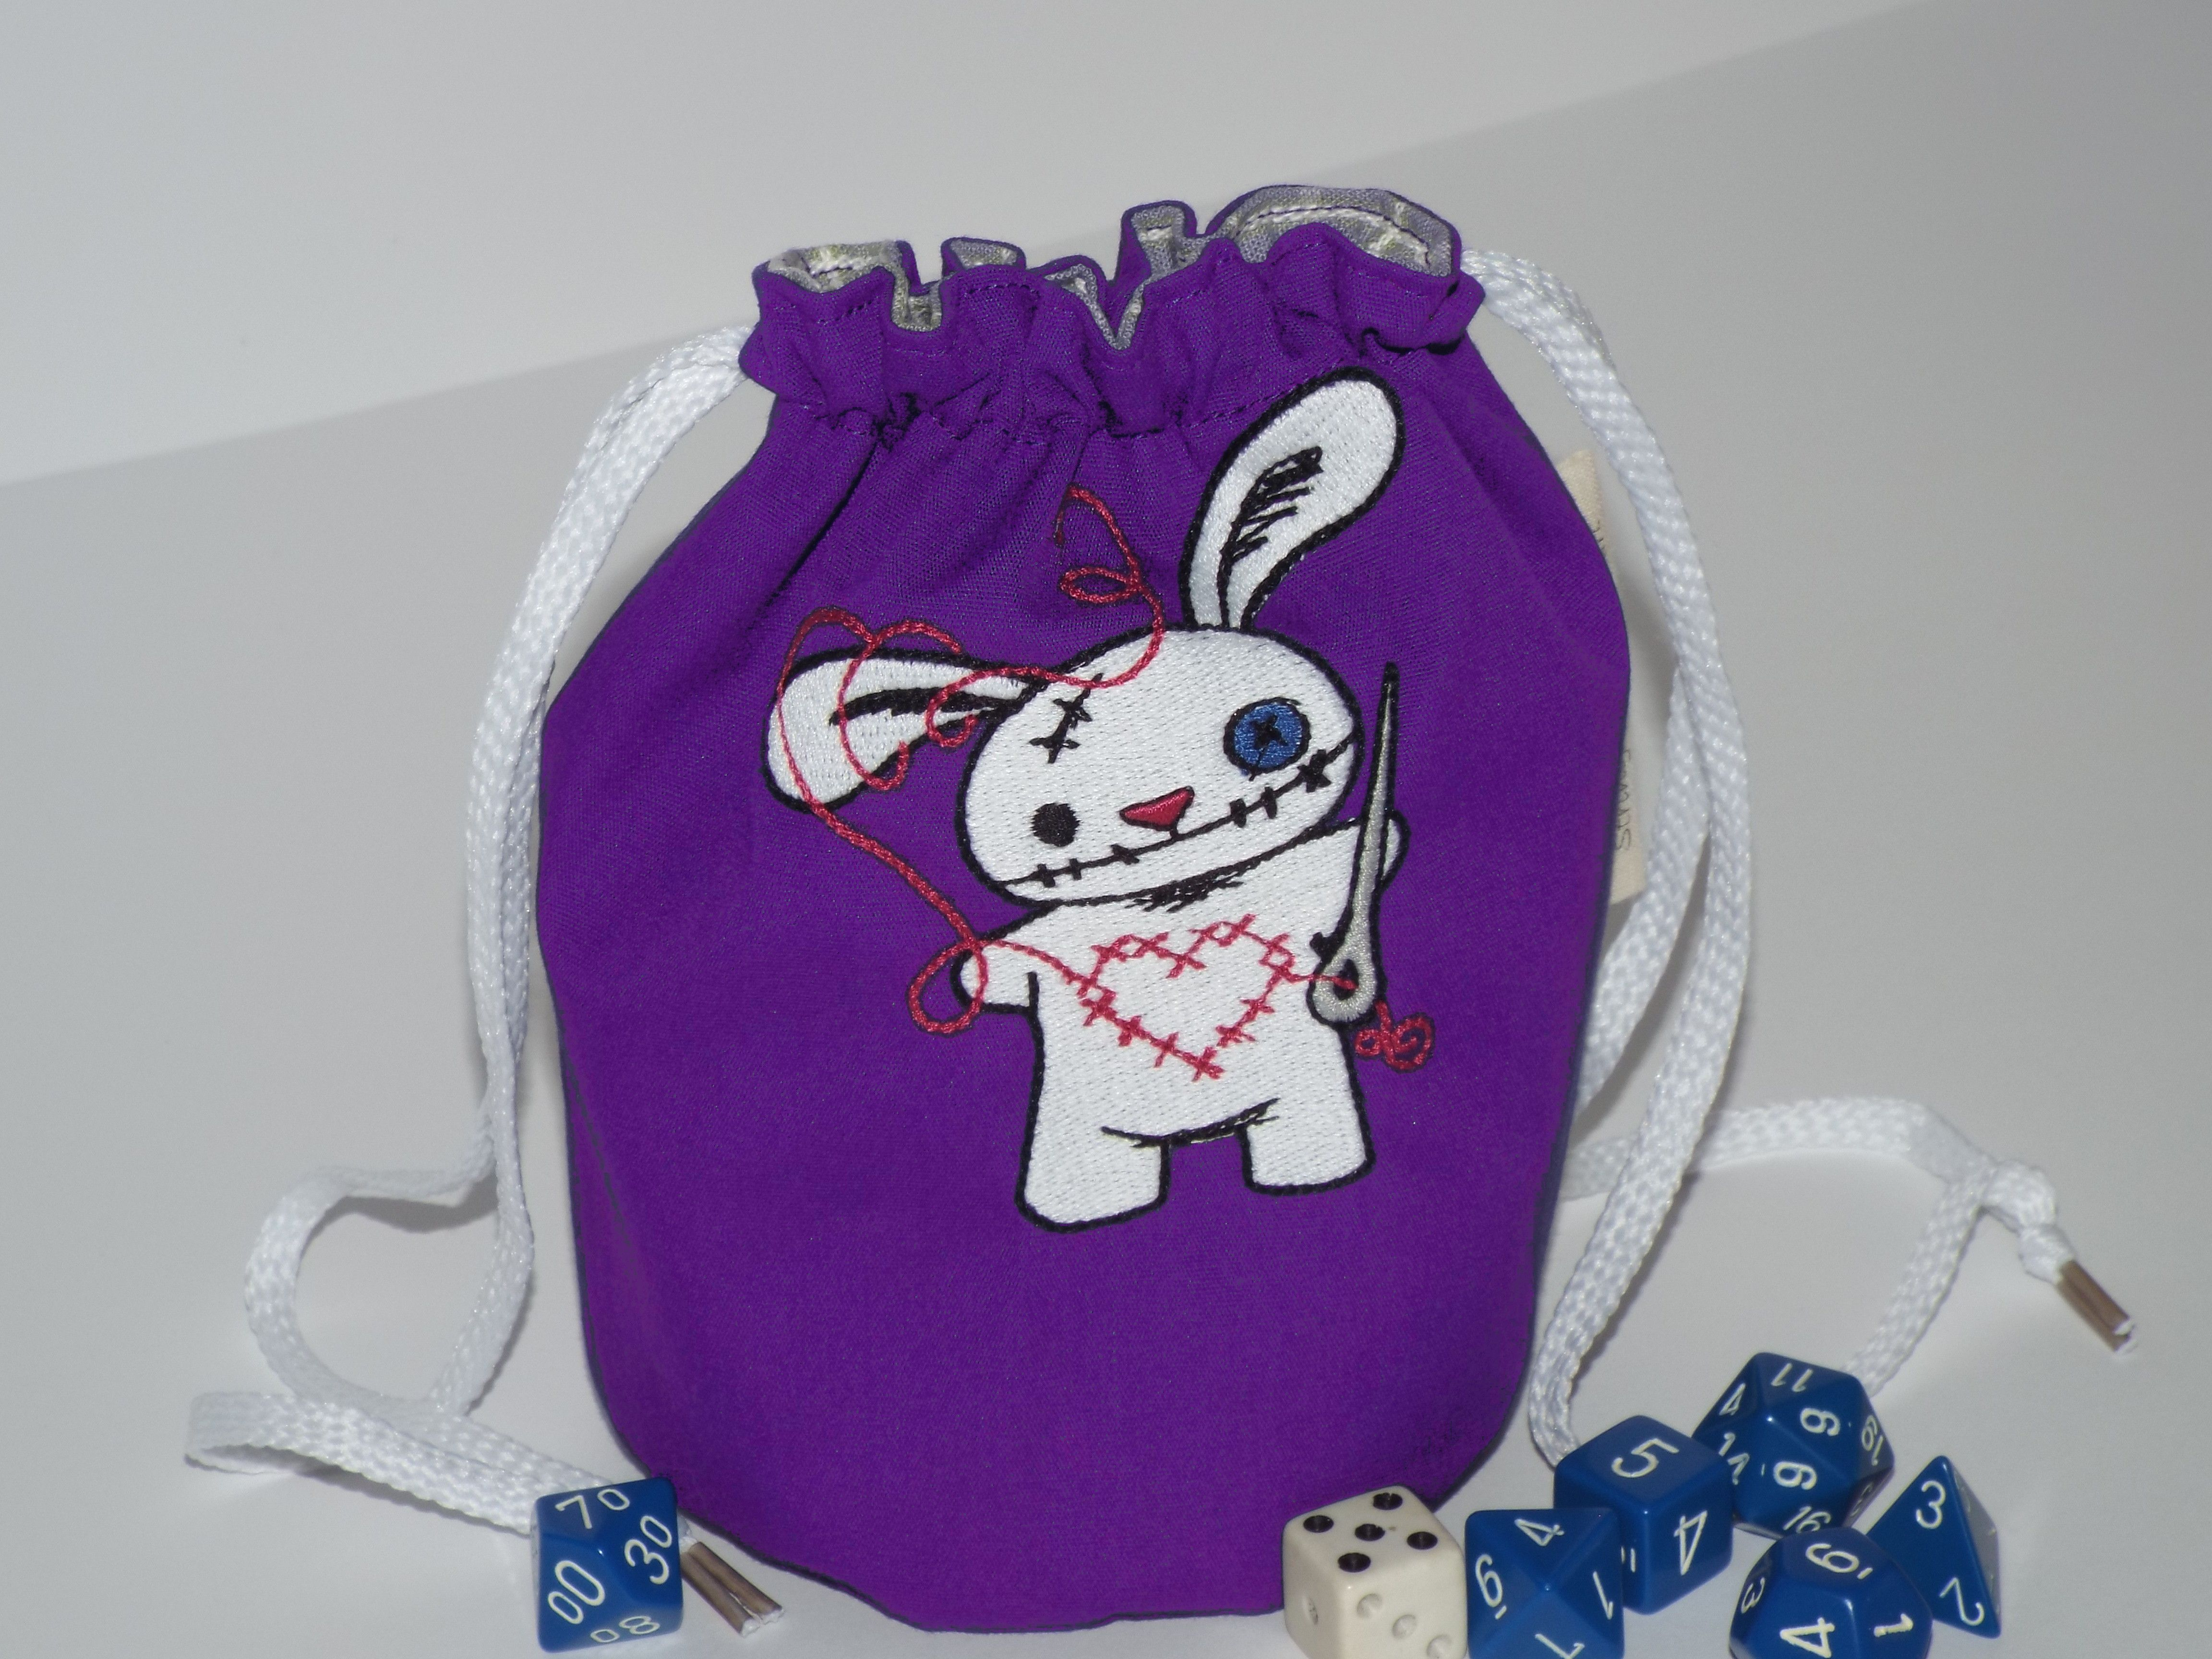 """This purple dice pouch has a machine embroidered white creepy bunny on it. Won't you be his friend? The outer fabric is purple with a purple plaid lining fabric. This pouch is 6 1/2"""" high, 4"""" round. It will stand open on the game table. It has white shoe lace drawstrings on 2 sides. Embroidery pa..."""